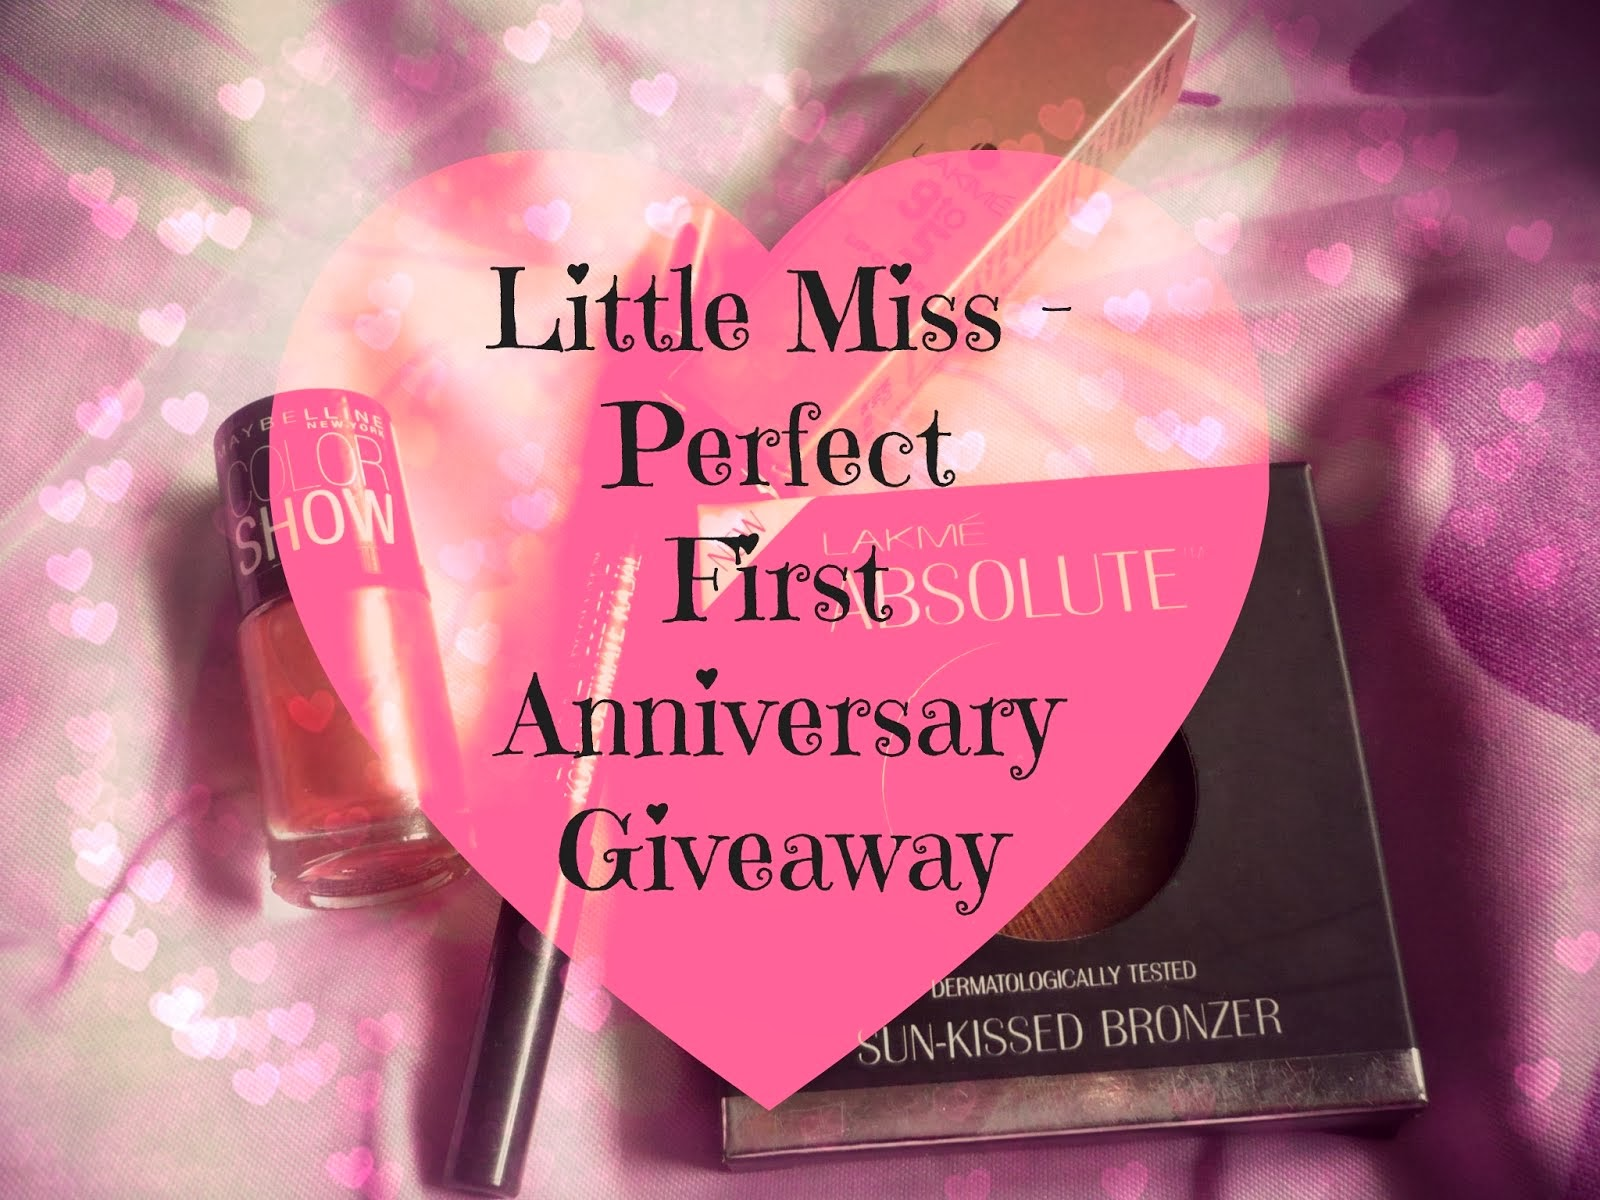 Enter my one year anniversary international give-away